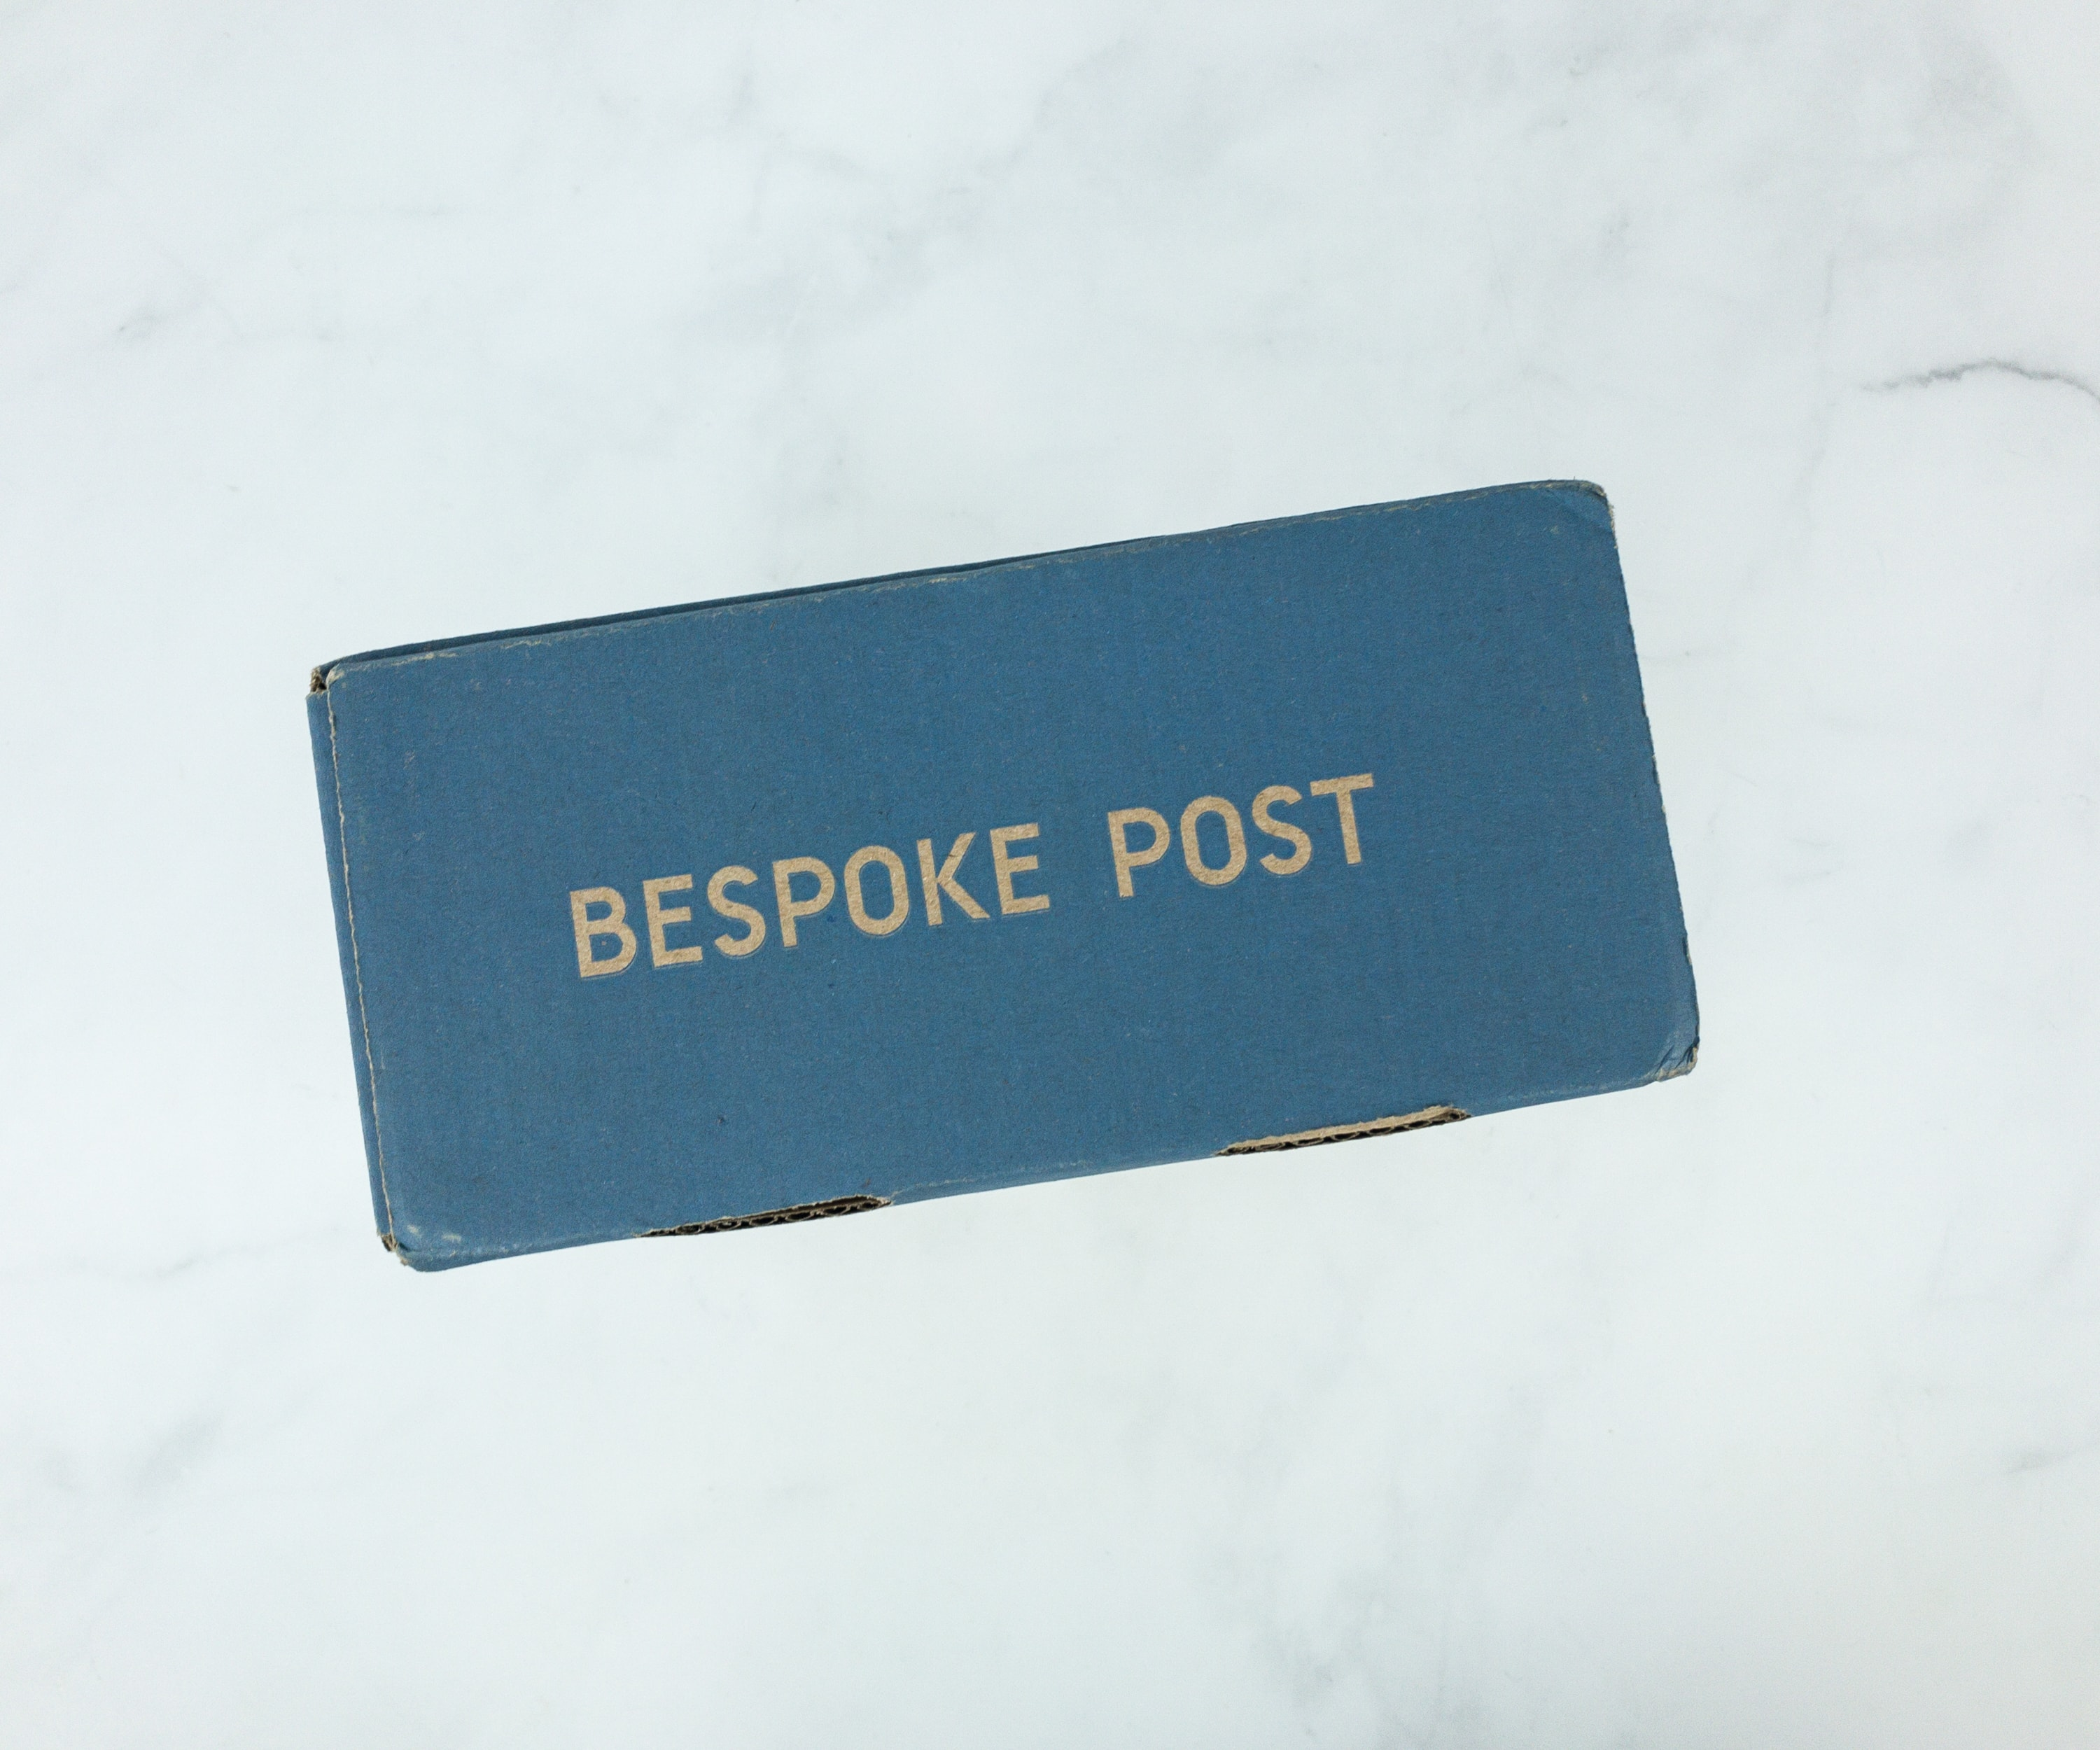 Bespoke Post Flash Sale: Get a FREE Mystery Box!